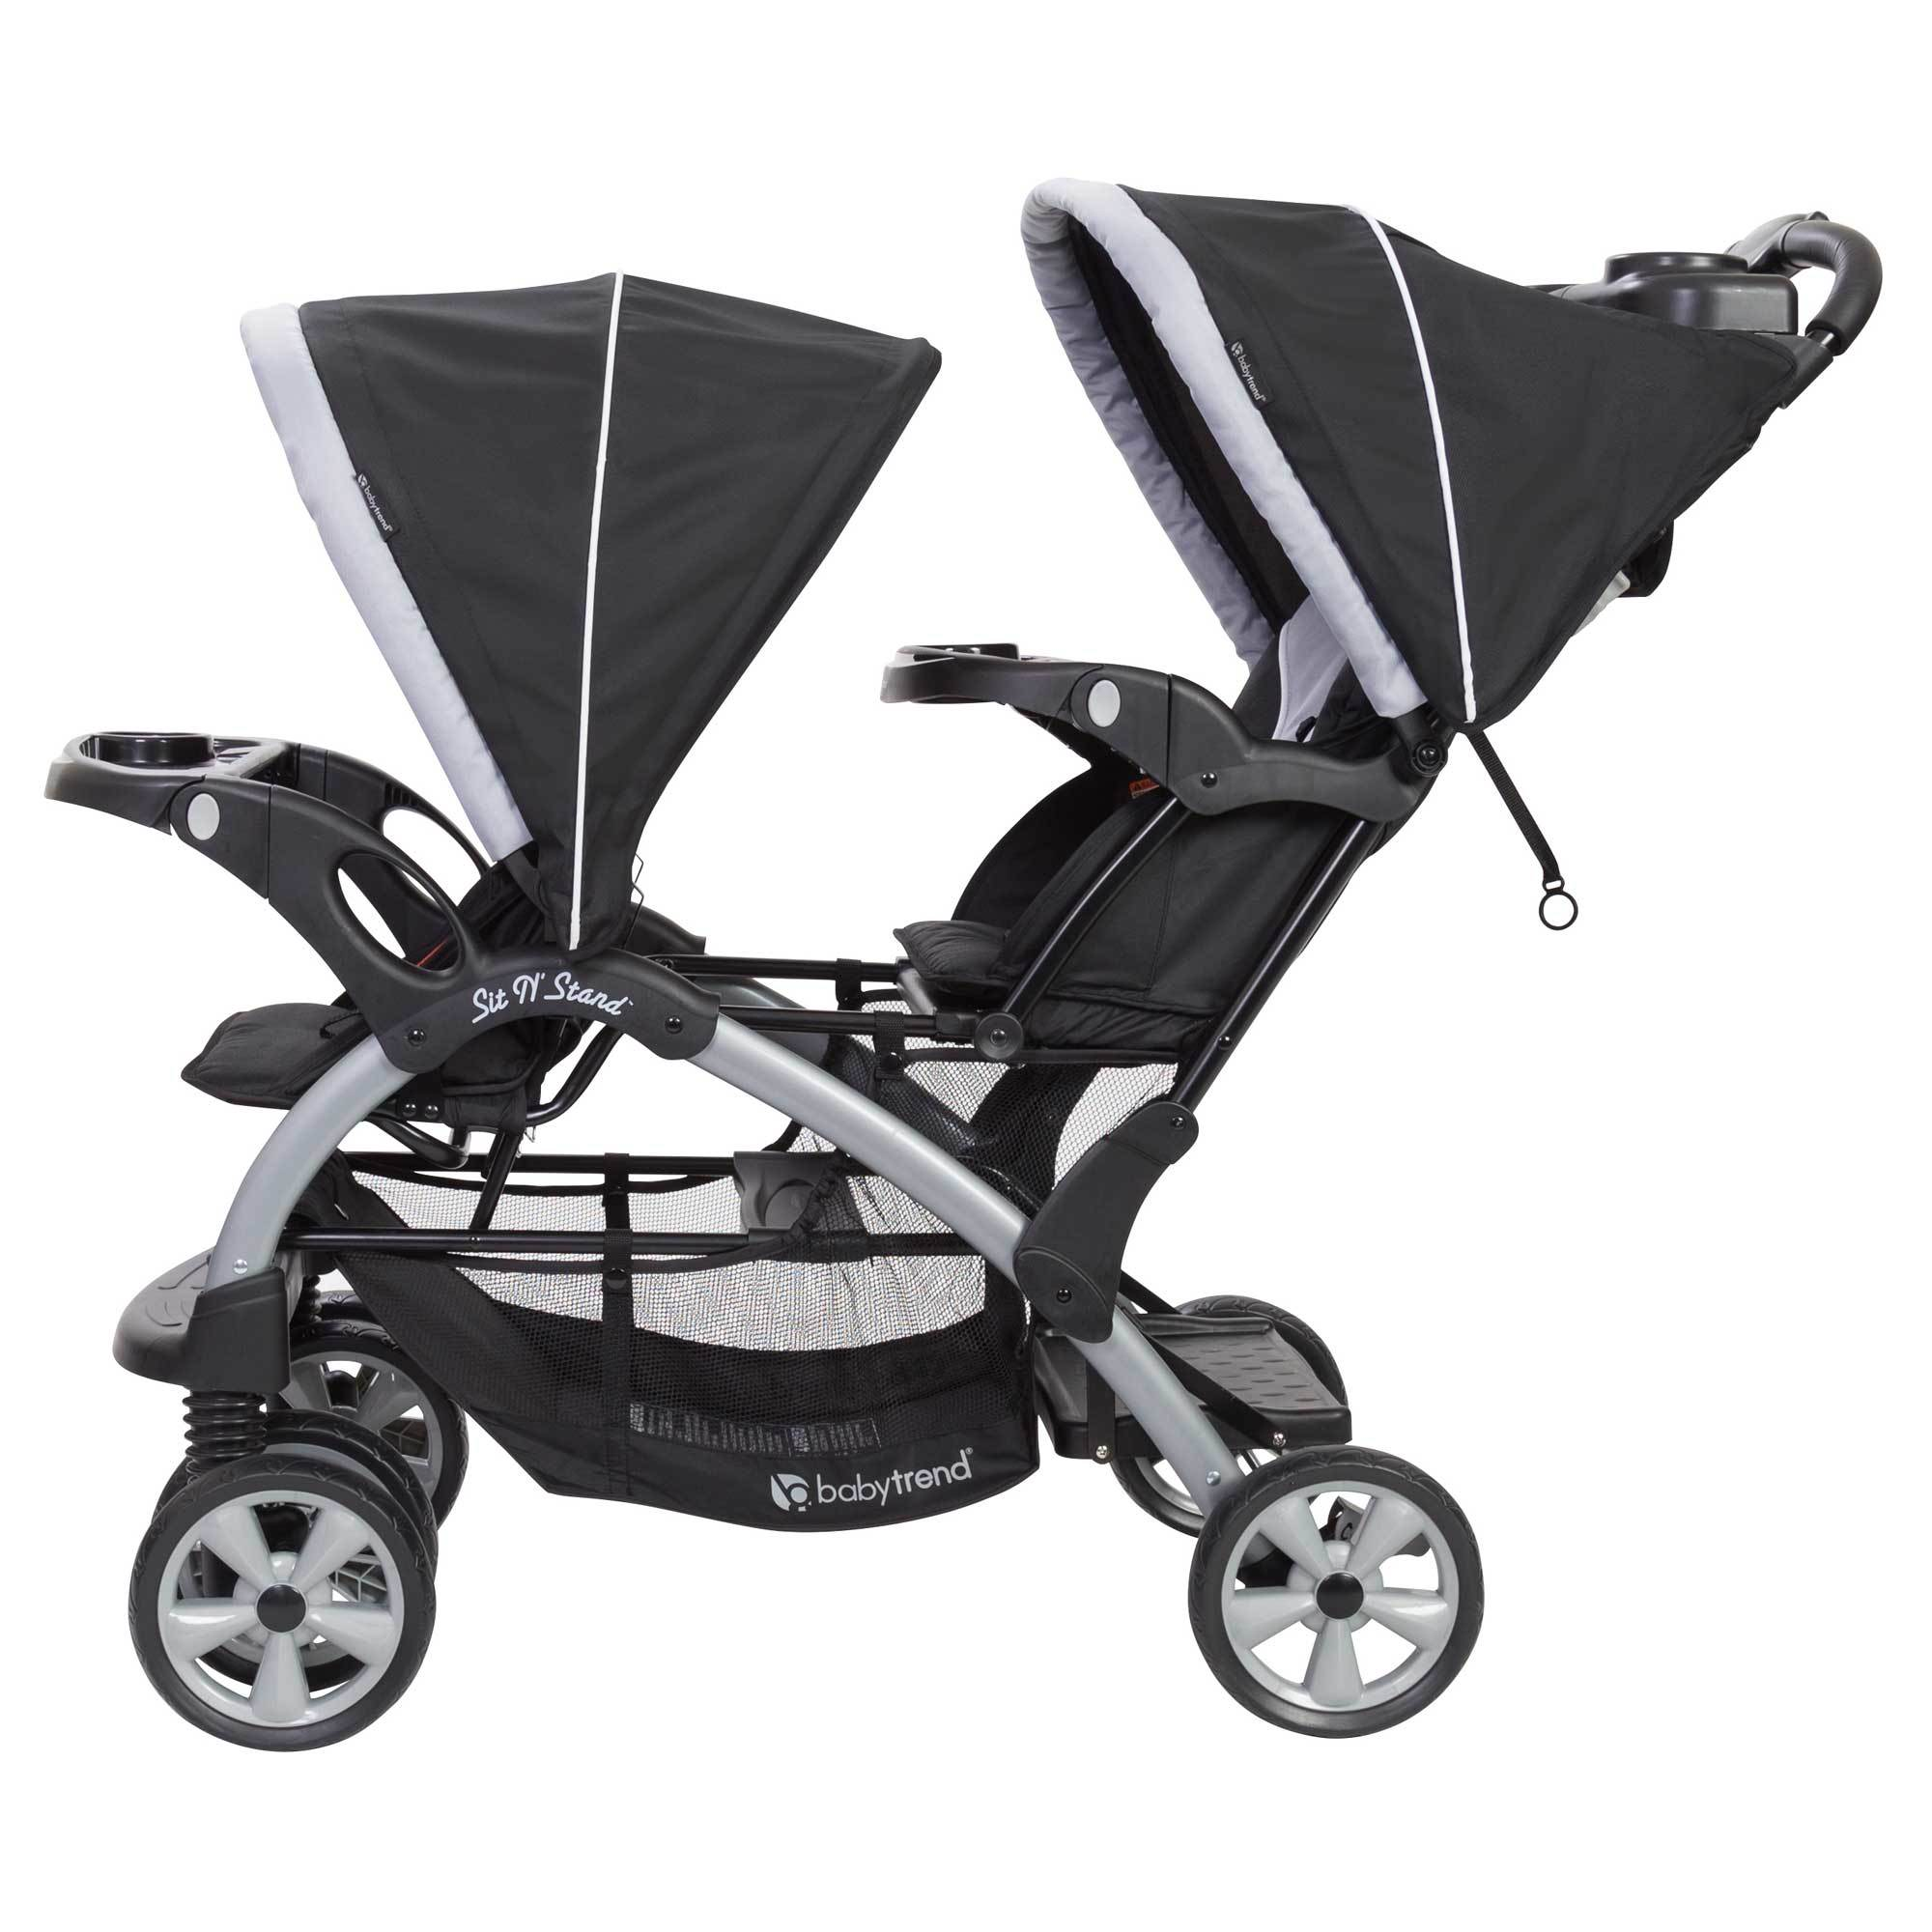 Baby Trend Sit N Stand Baby Double Stroller and 2 Infant ...